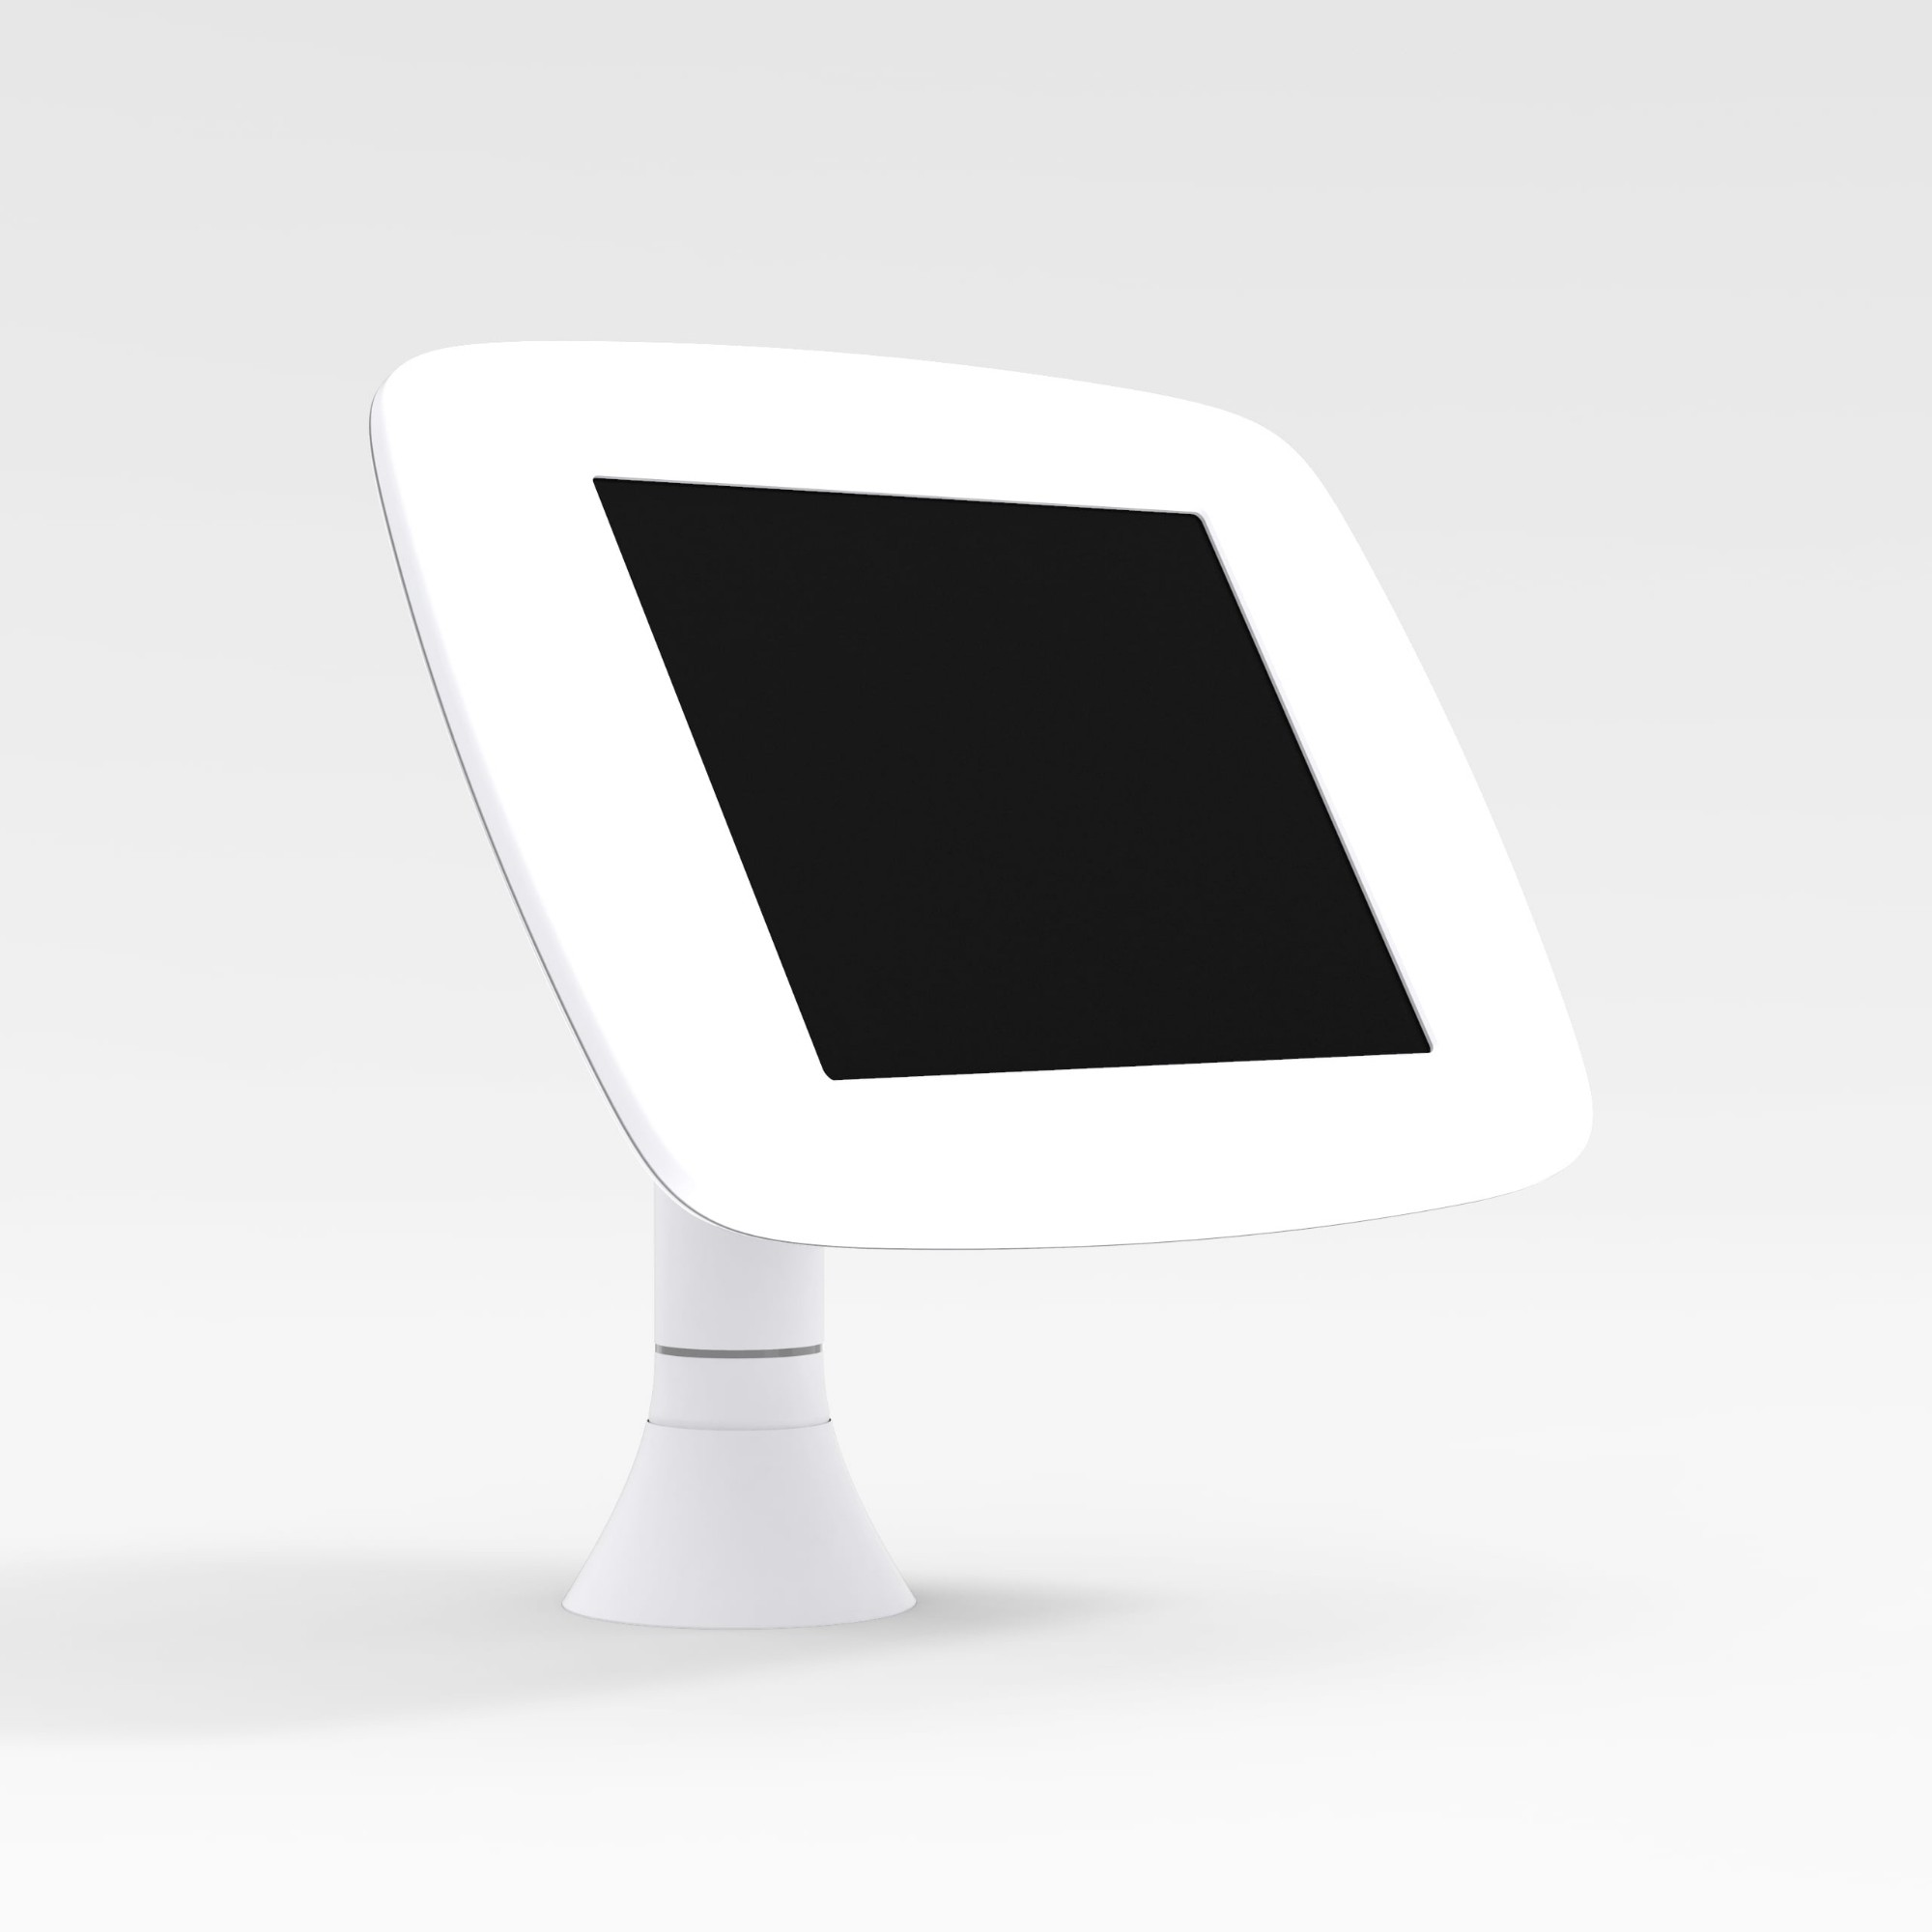 Bouncepad Sumo   Apple iPad 4th Gen 9.7 (2012)   White   Covered Front Camera and Home Button   Rotate 270 / Switch Off  